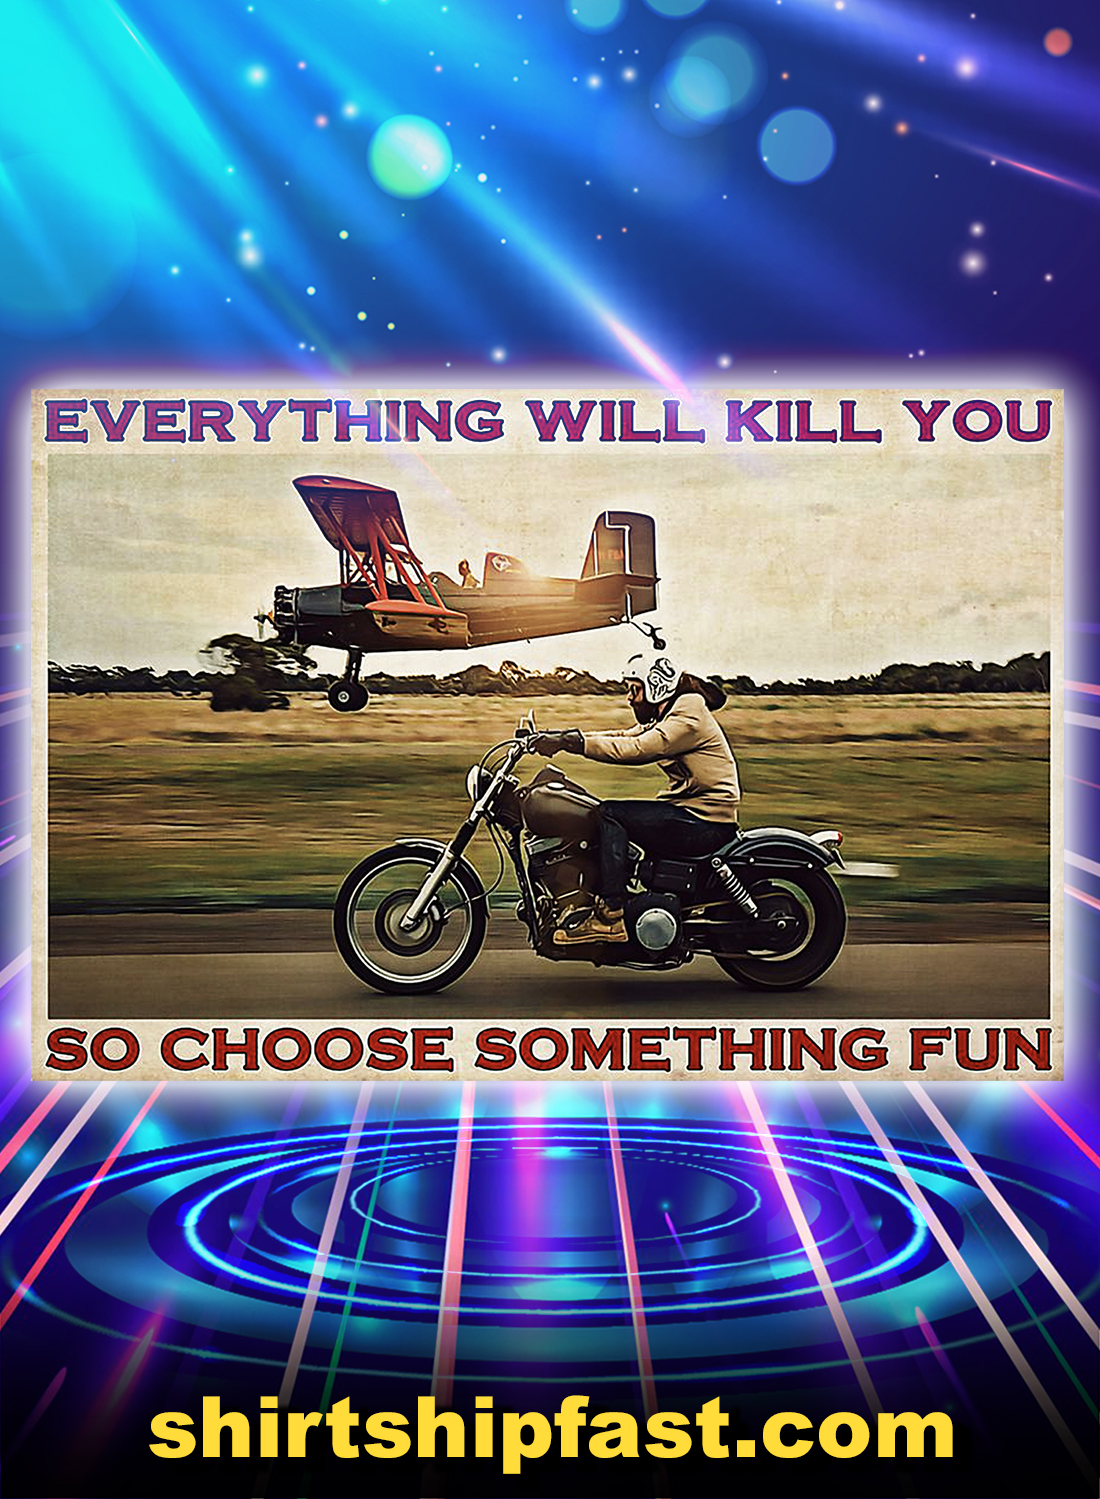 Motorbike airplane everything will kill you so choose something fun poster - A4